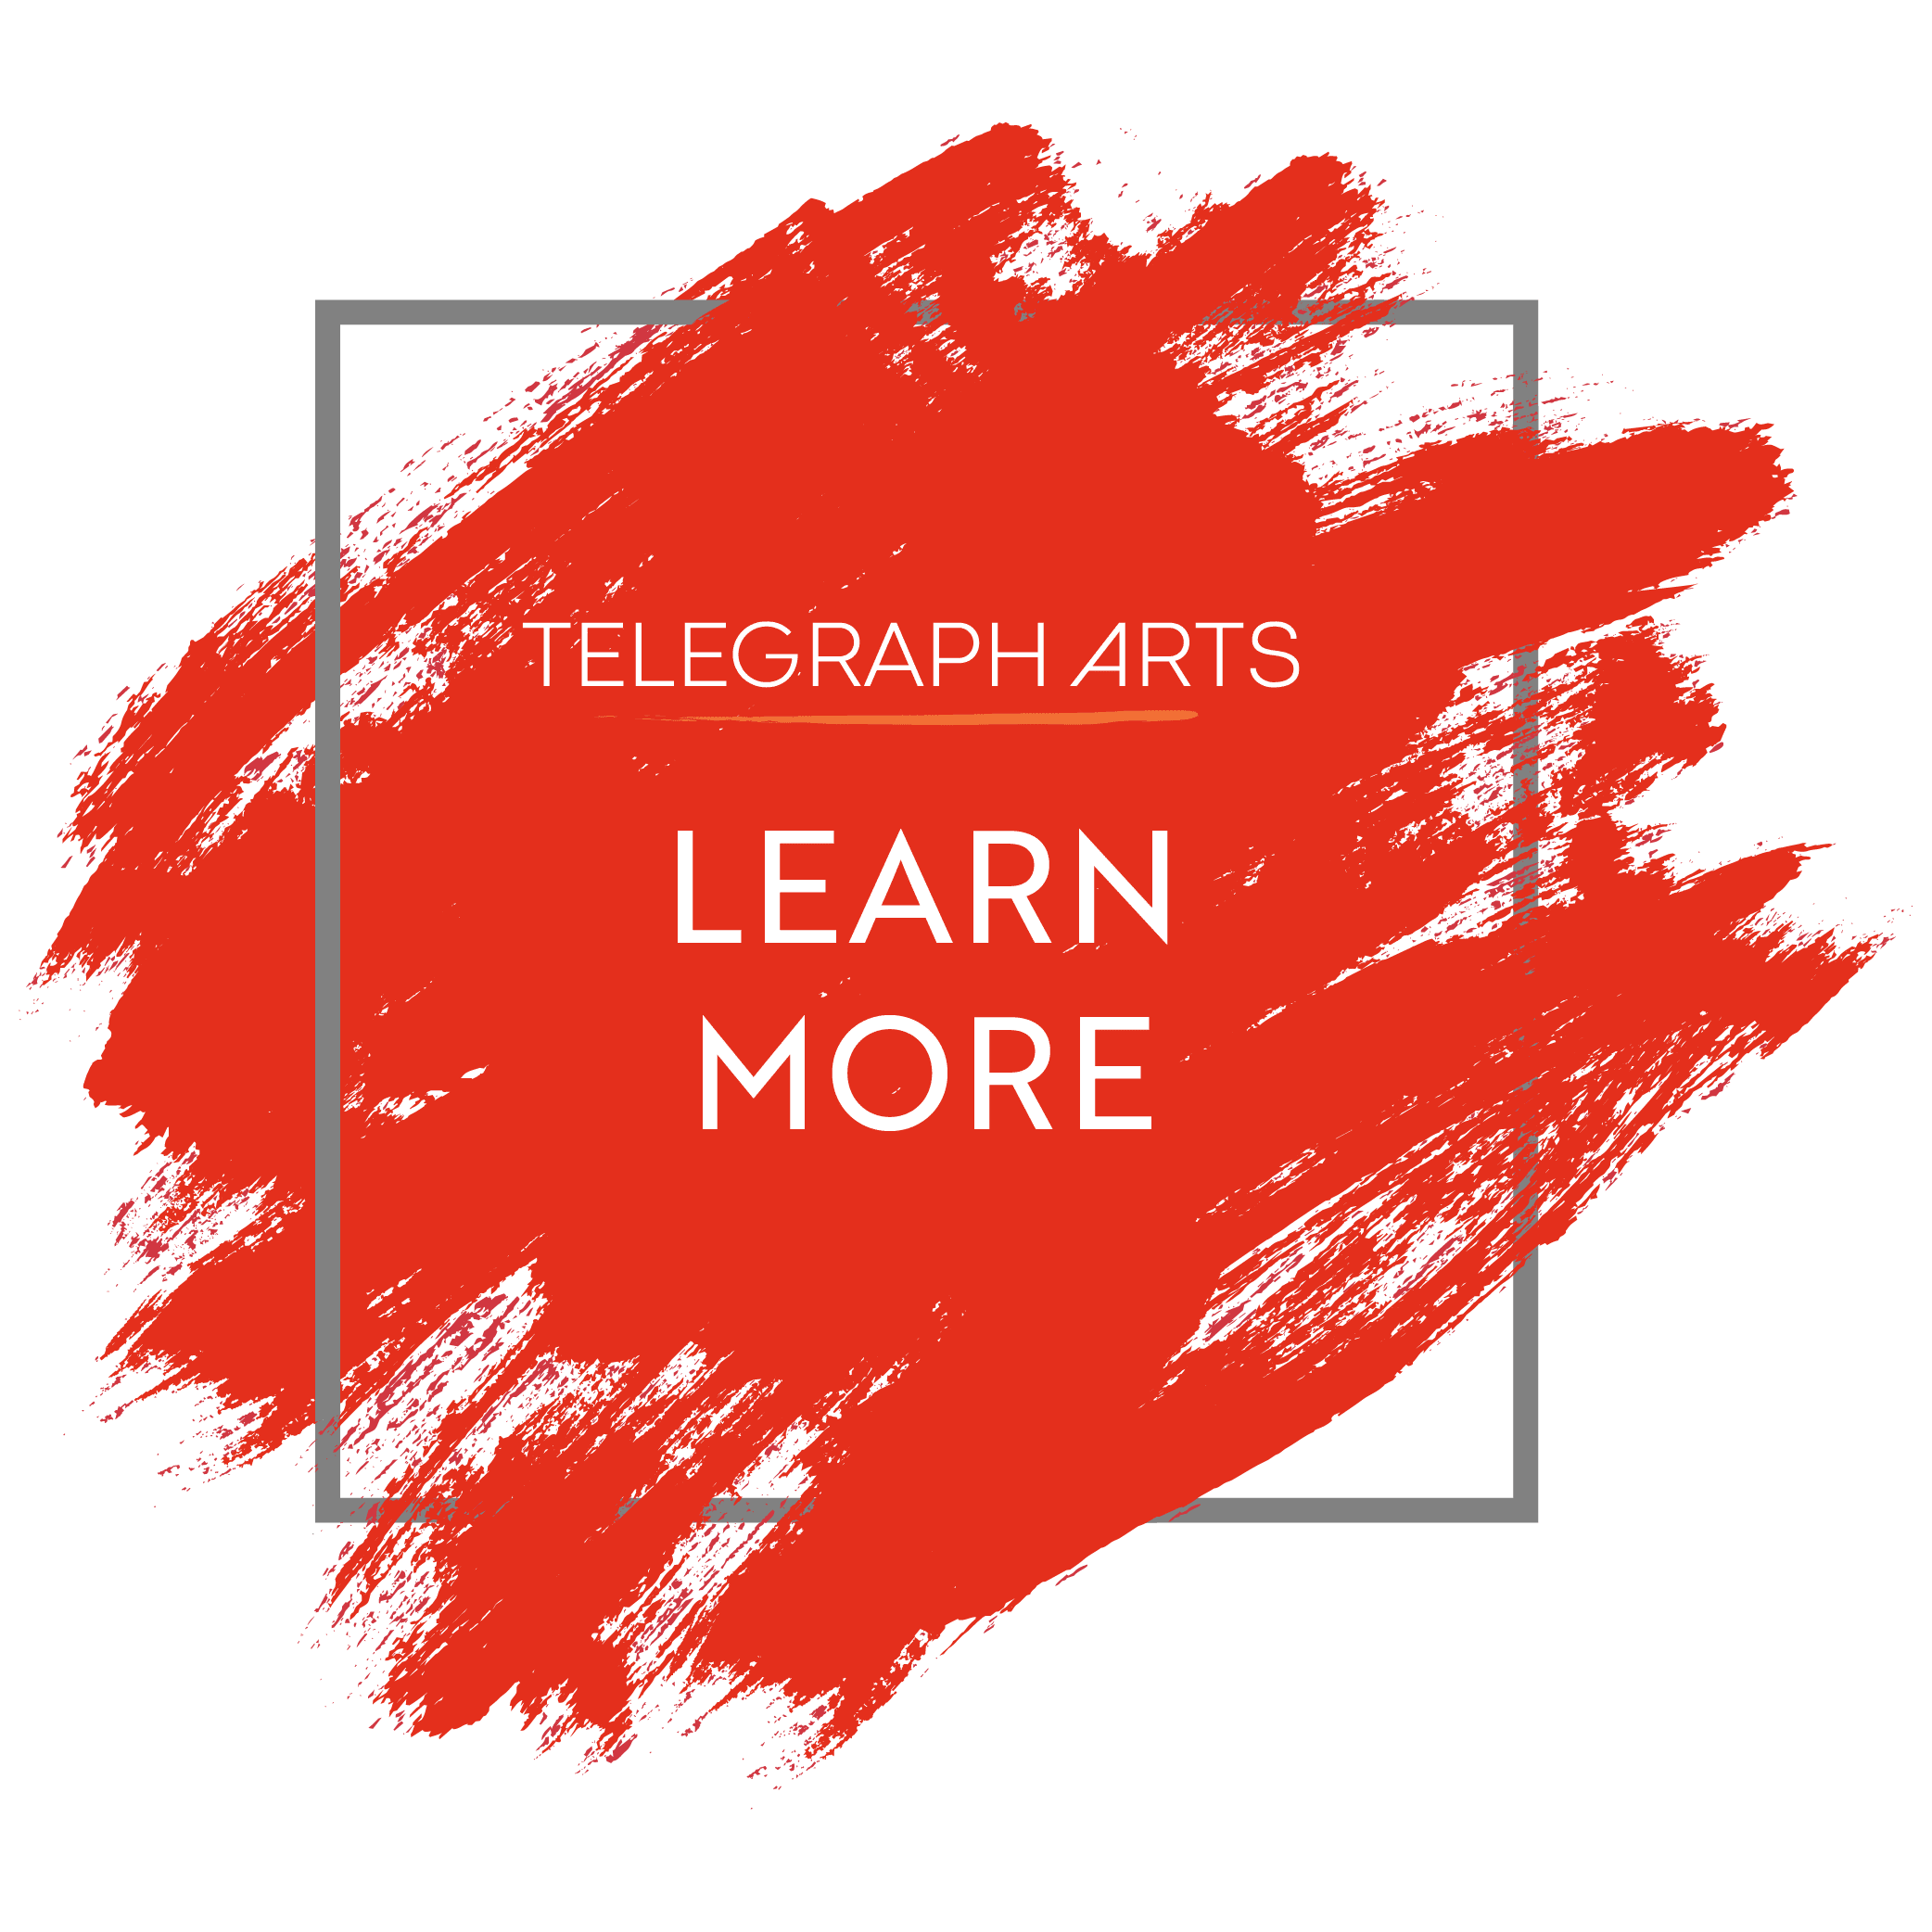 View the floor plans at Telegraph Arts in Oakland, California